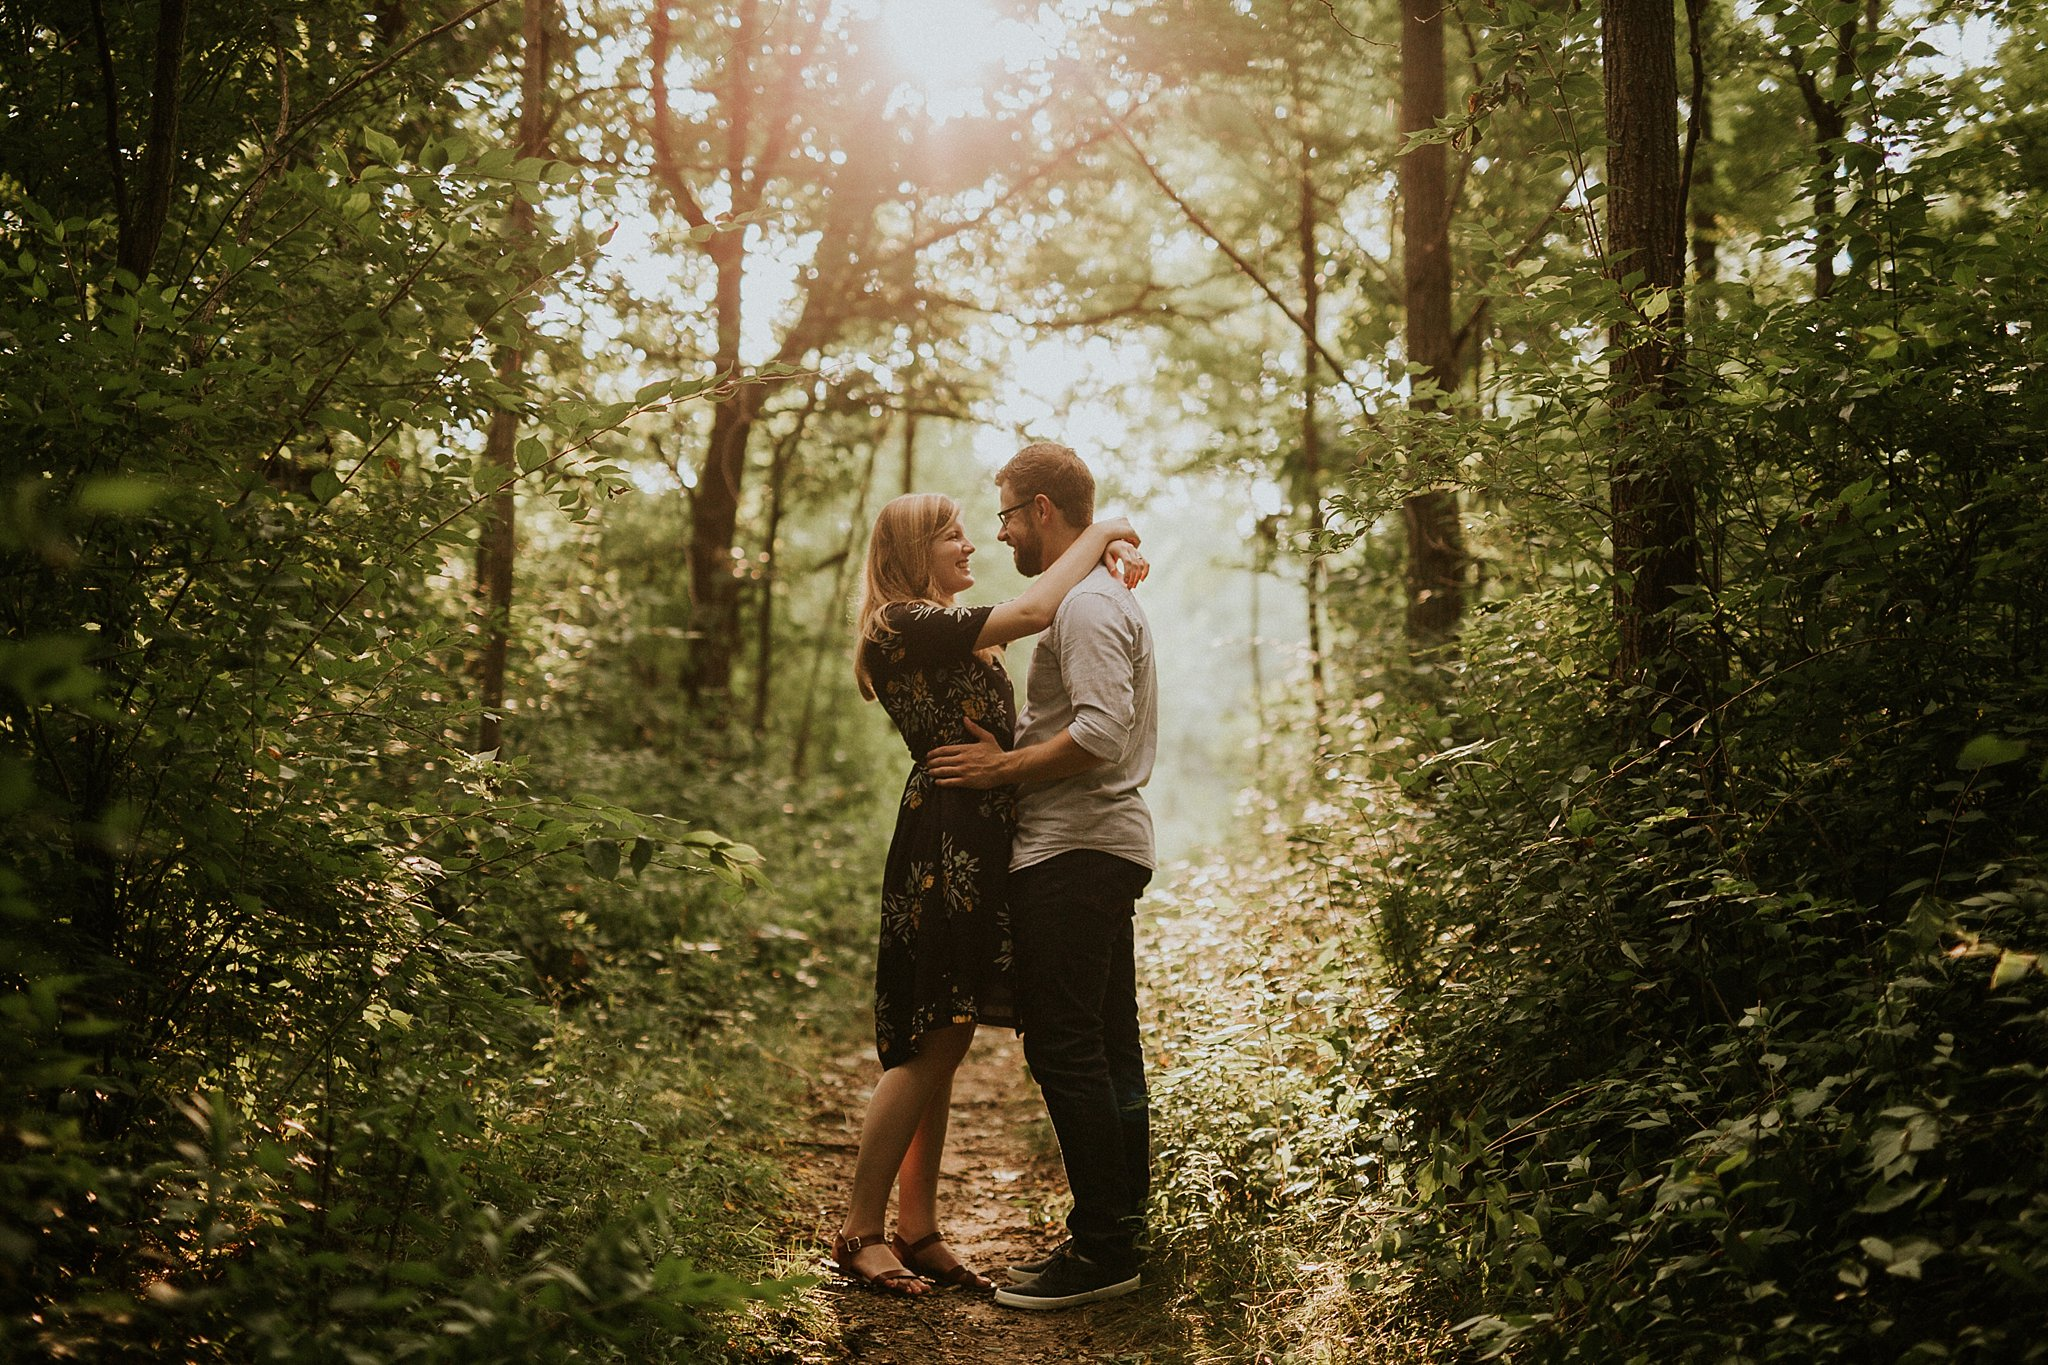 peter-katelyn_chicago-engagement-session_west-dundee-raceway-woods_0011.jpg